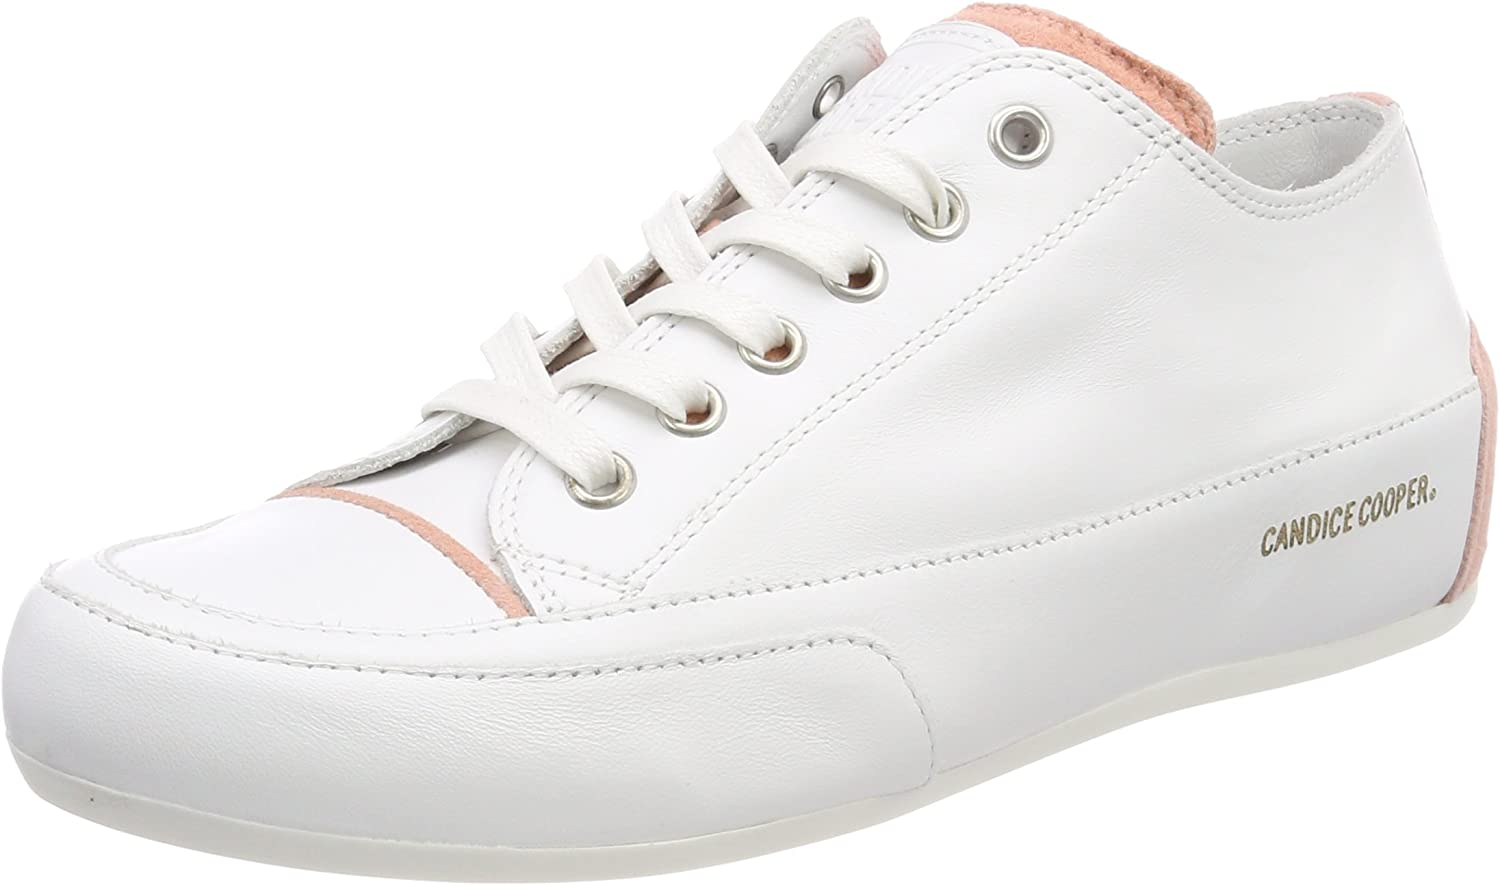 Candice Cooper Women's Vitello Trainers